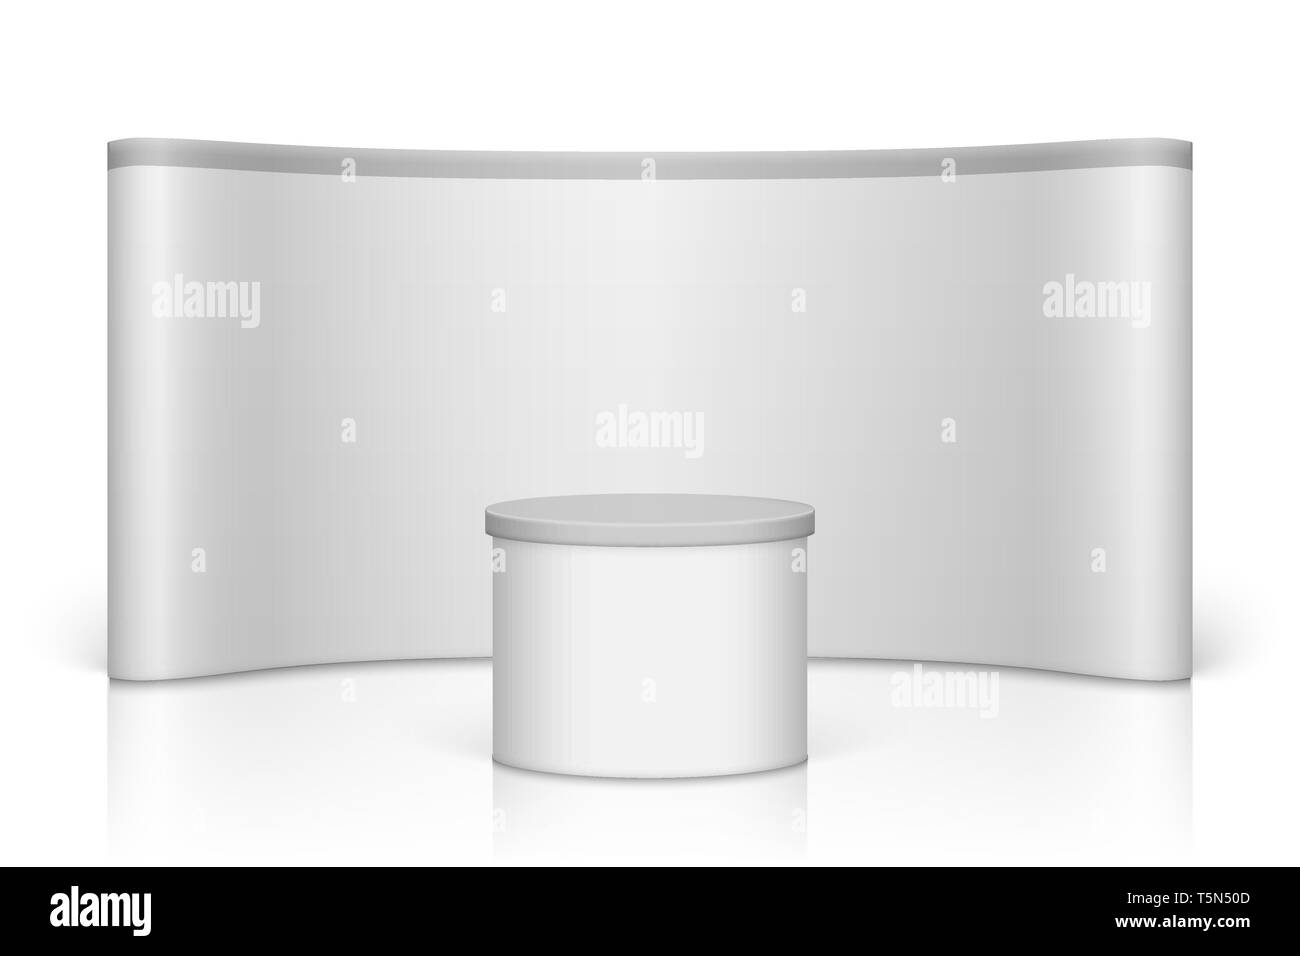 Exhibition Booth Blank : White blank trade show booth round exhibition stand stock vector